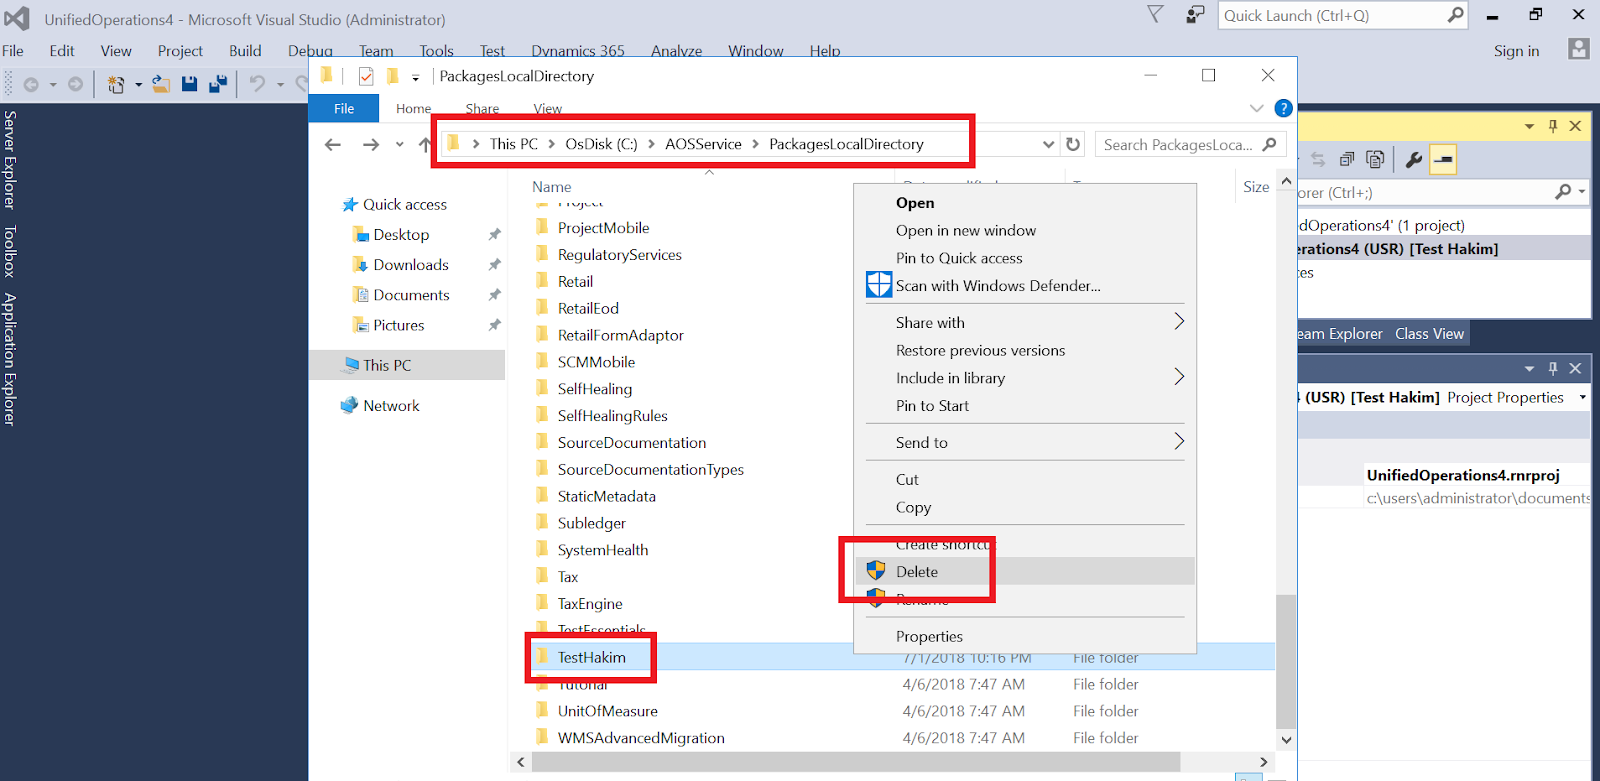 How to delete Model in Dynamics 365? - Finance and Operations Community